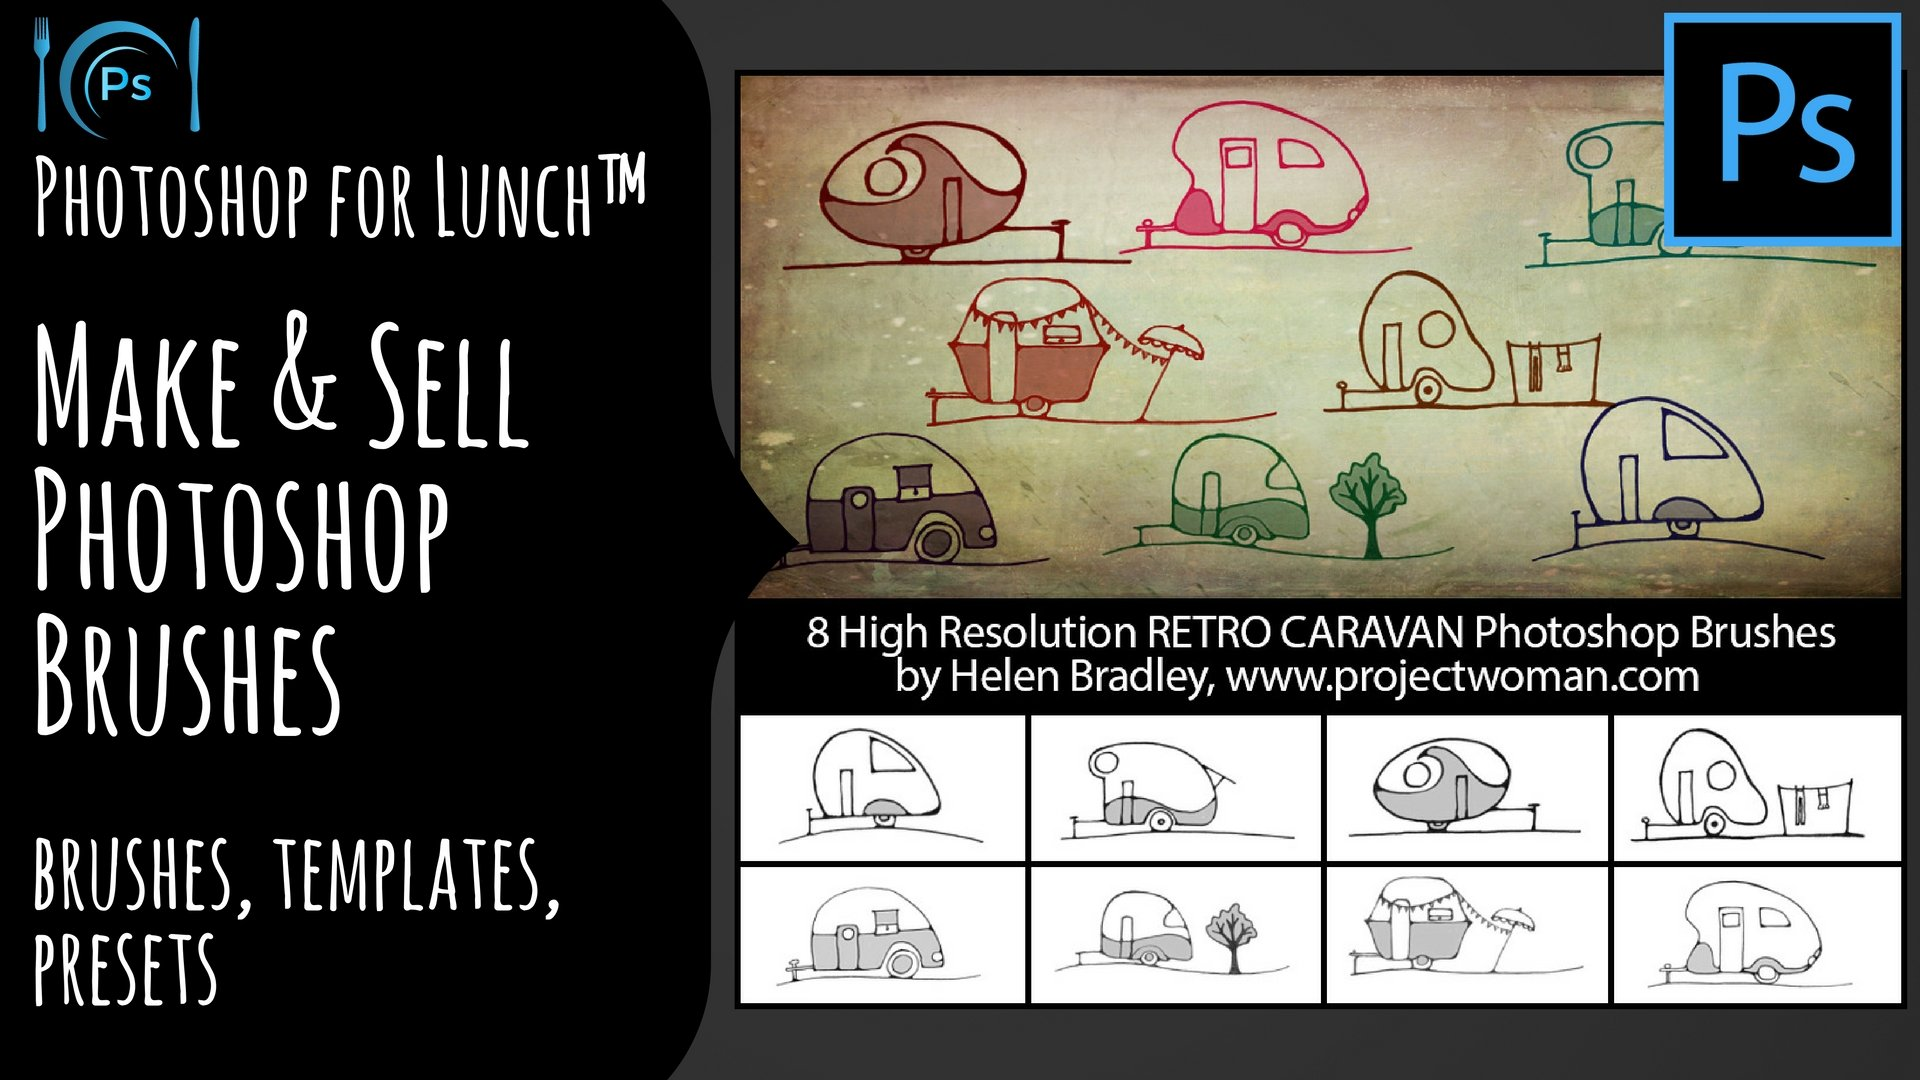 Photoshop for Lunch™ - Make & Sell Photoshop Brushes - Brushes